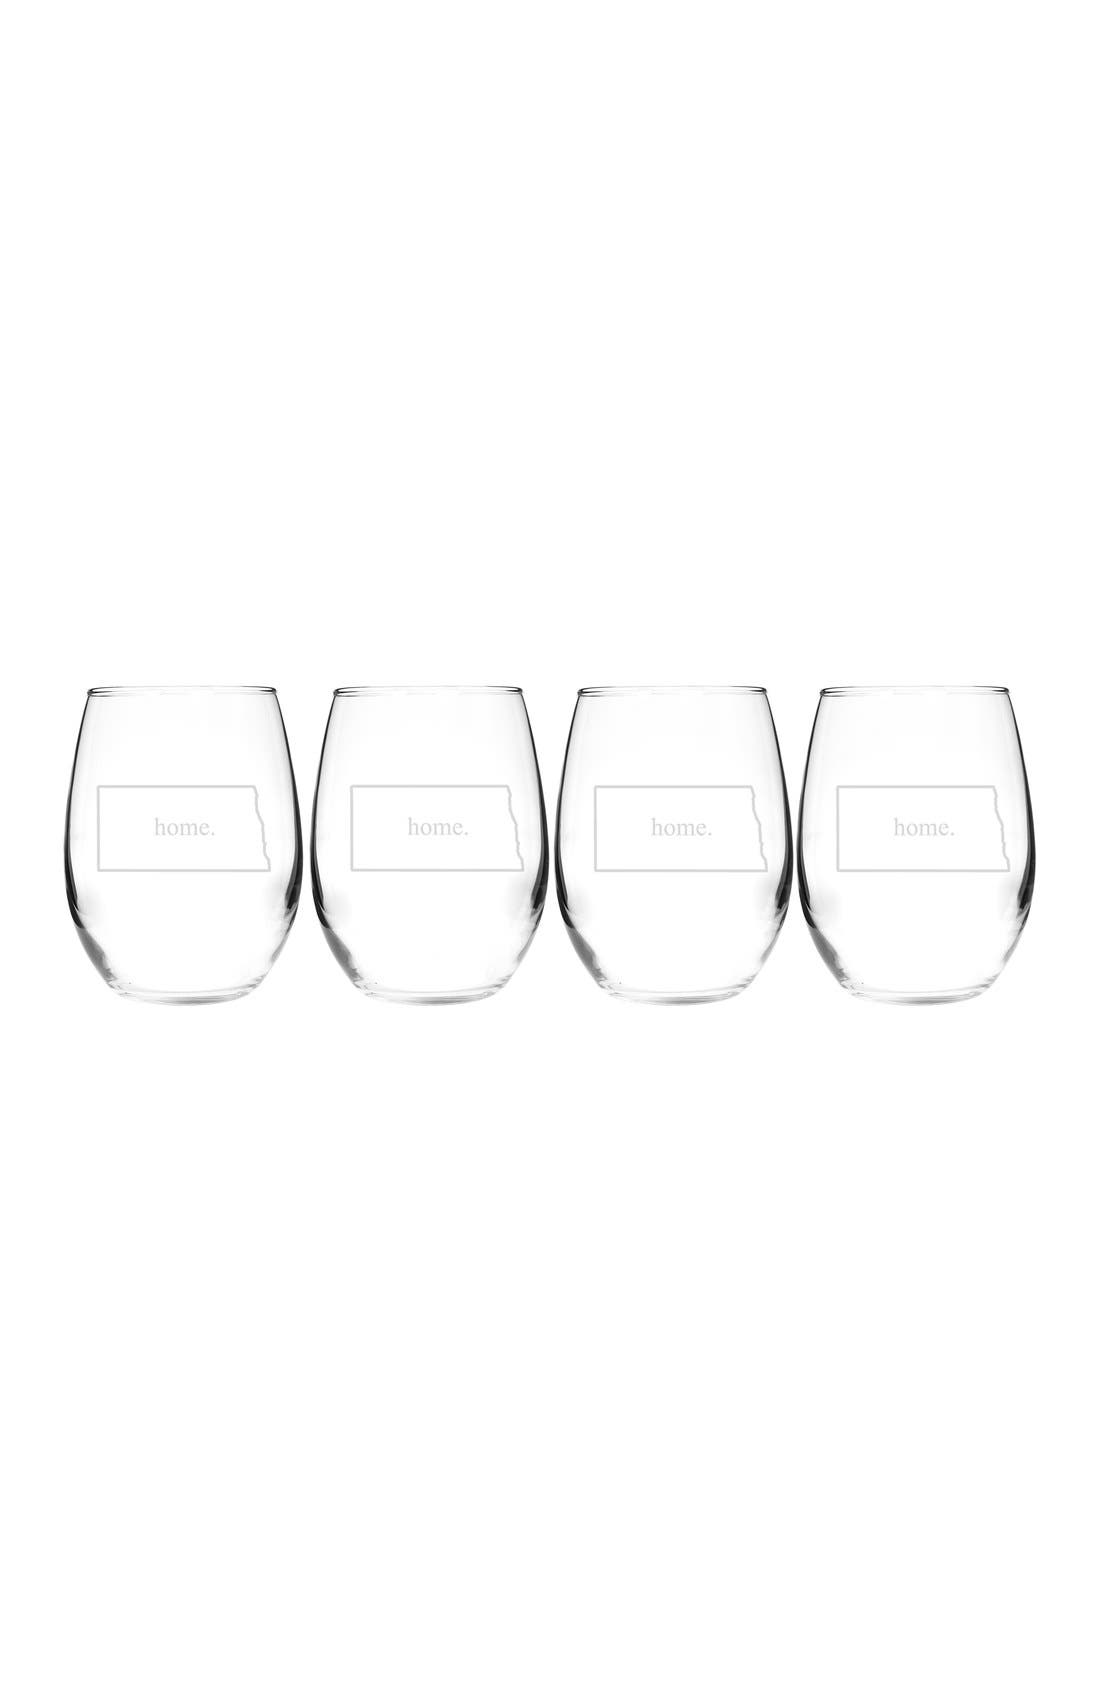 Home State Set of 4 Stemless Wine Glasses,                             Main thumbnail 29, color,